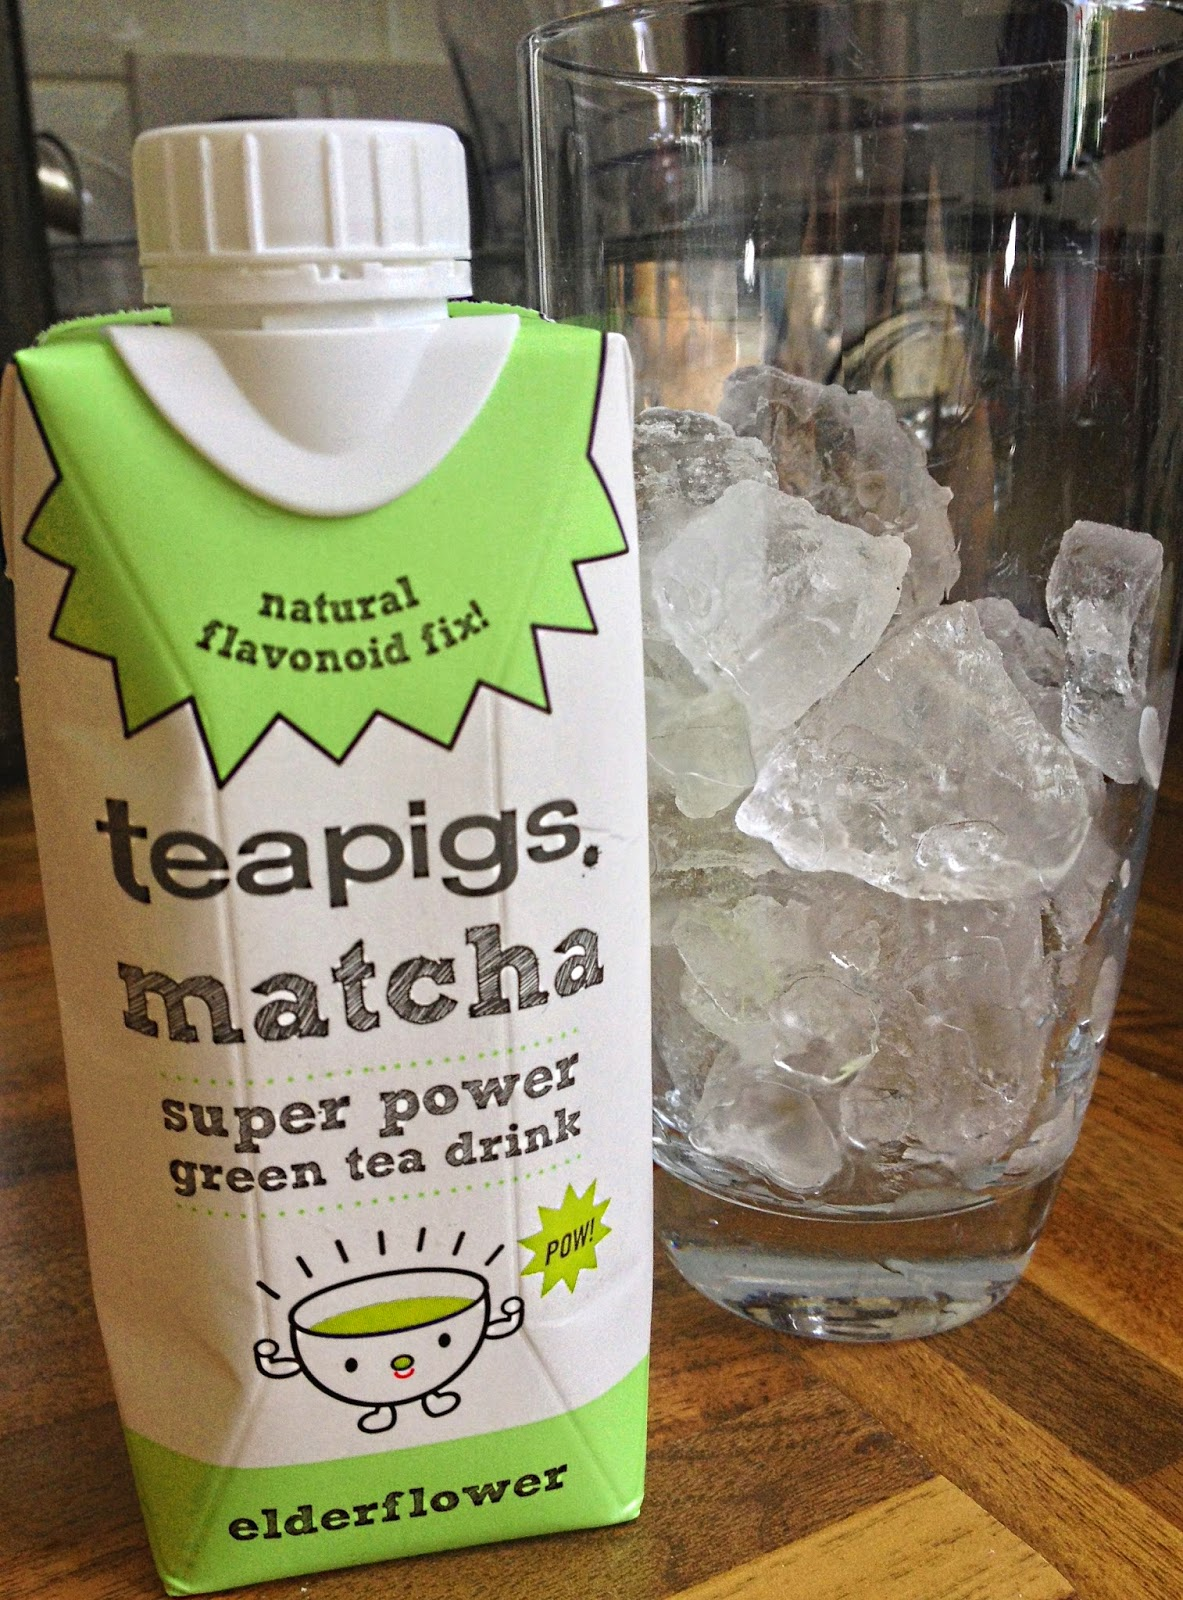 ThatRedheadSaid : teapigs matcha super power green tea drink : elderflower drink review